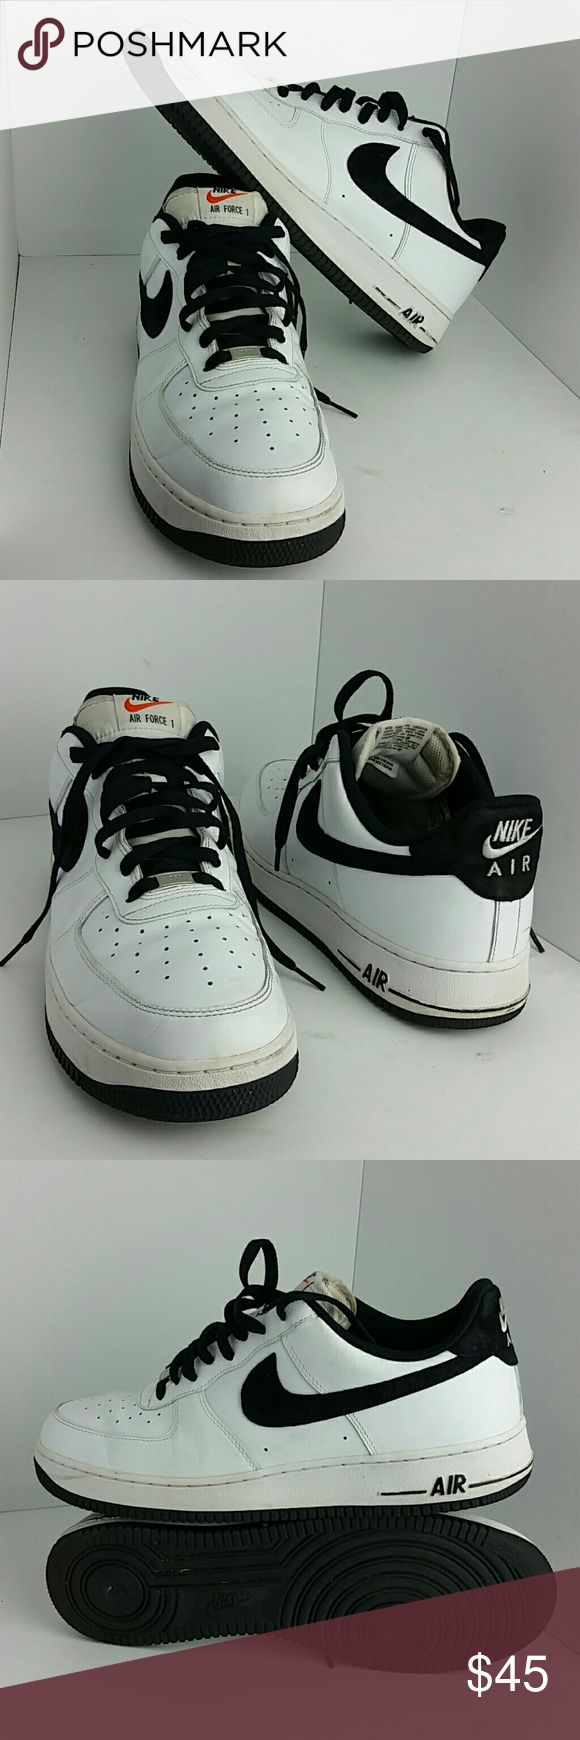 NIKE AIR FORCE 1 LOW MEN'S SHOES IN GOOD CONDITION   SKE # NB NIKE Shoes Athletic Shoes